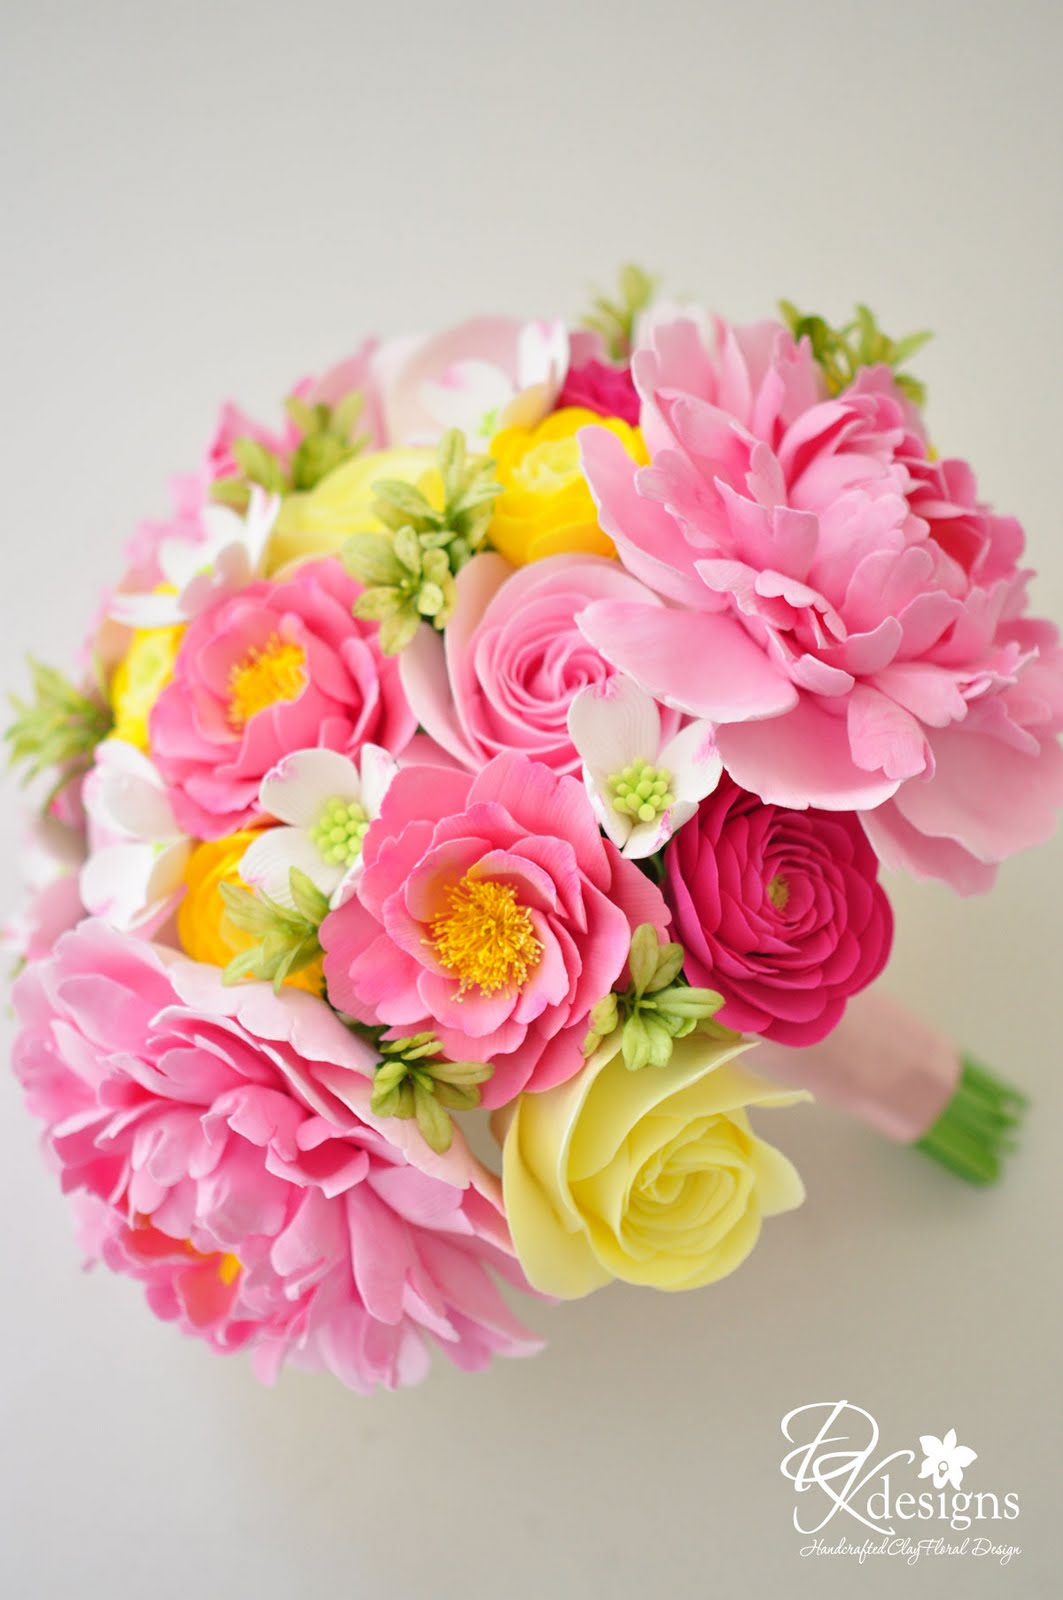 DK Designs Pink and Yellow Wedding Bouquet for a Southern Wedding